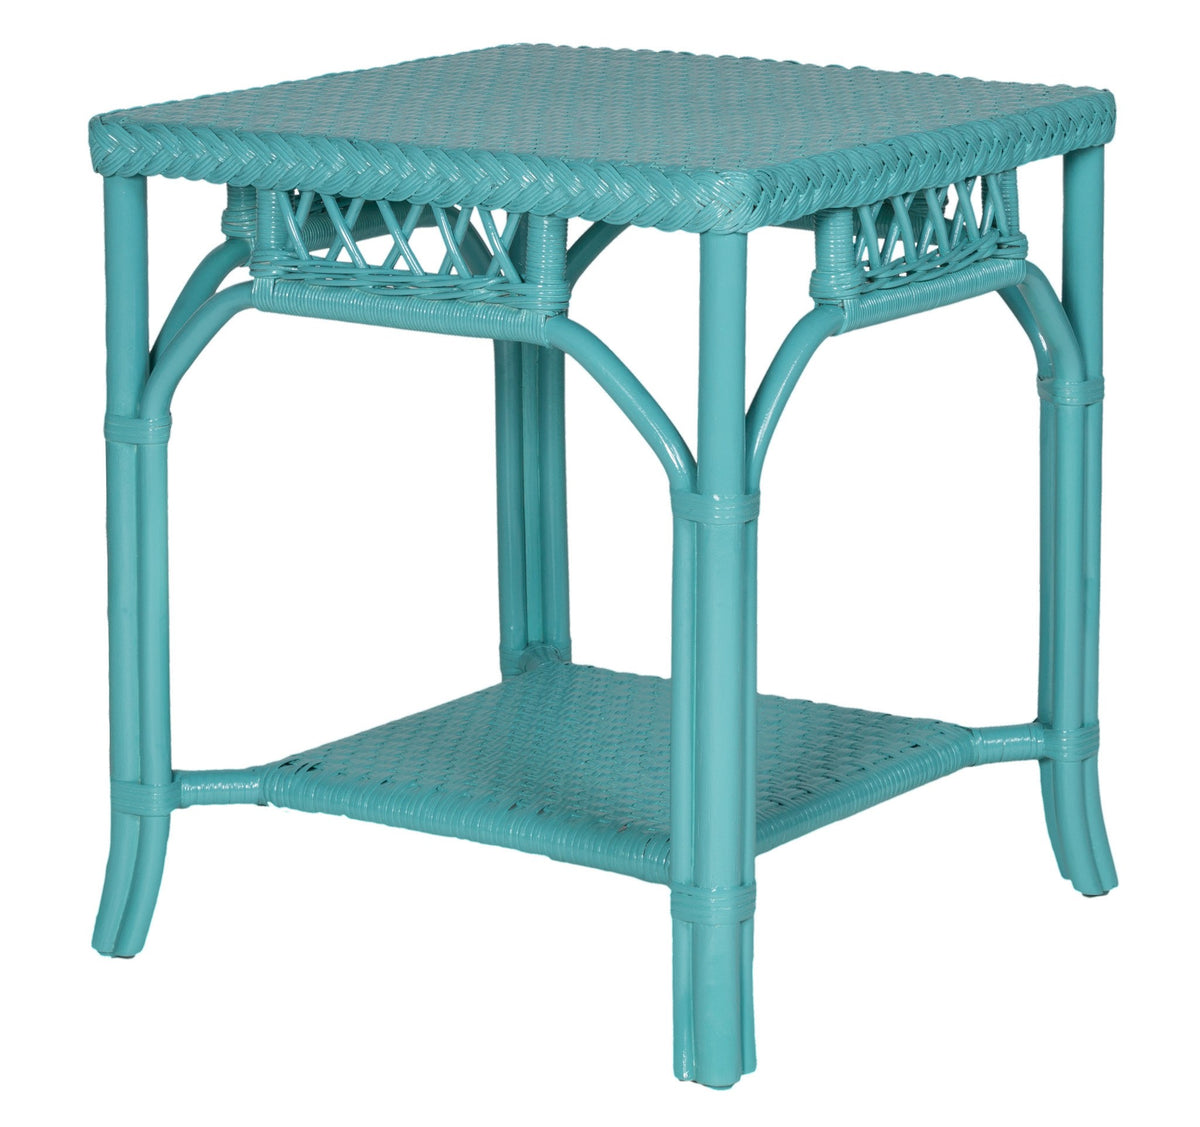 Designer Wicker & Rattan By Tribor Windsor End Table by Design Wicker from Tribor End Table - Rattan Imports